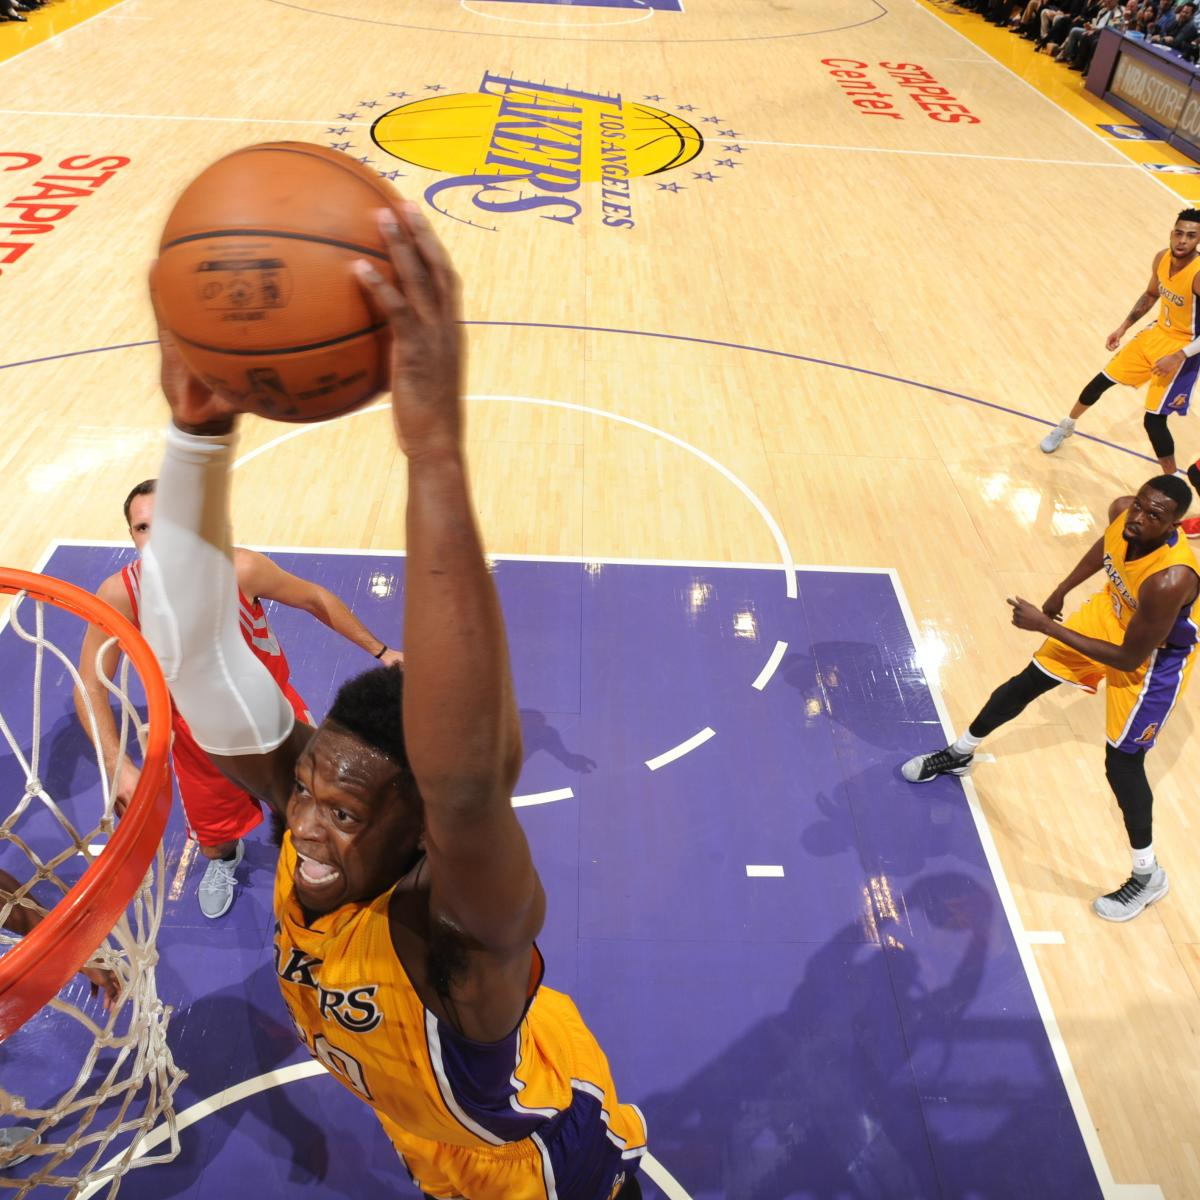 Rockets Vs. Lakers: Score, Highlights And Reaction From